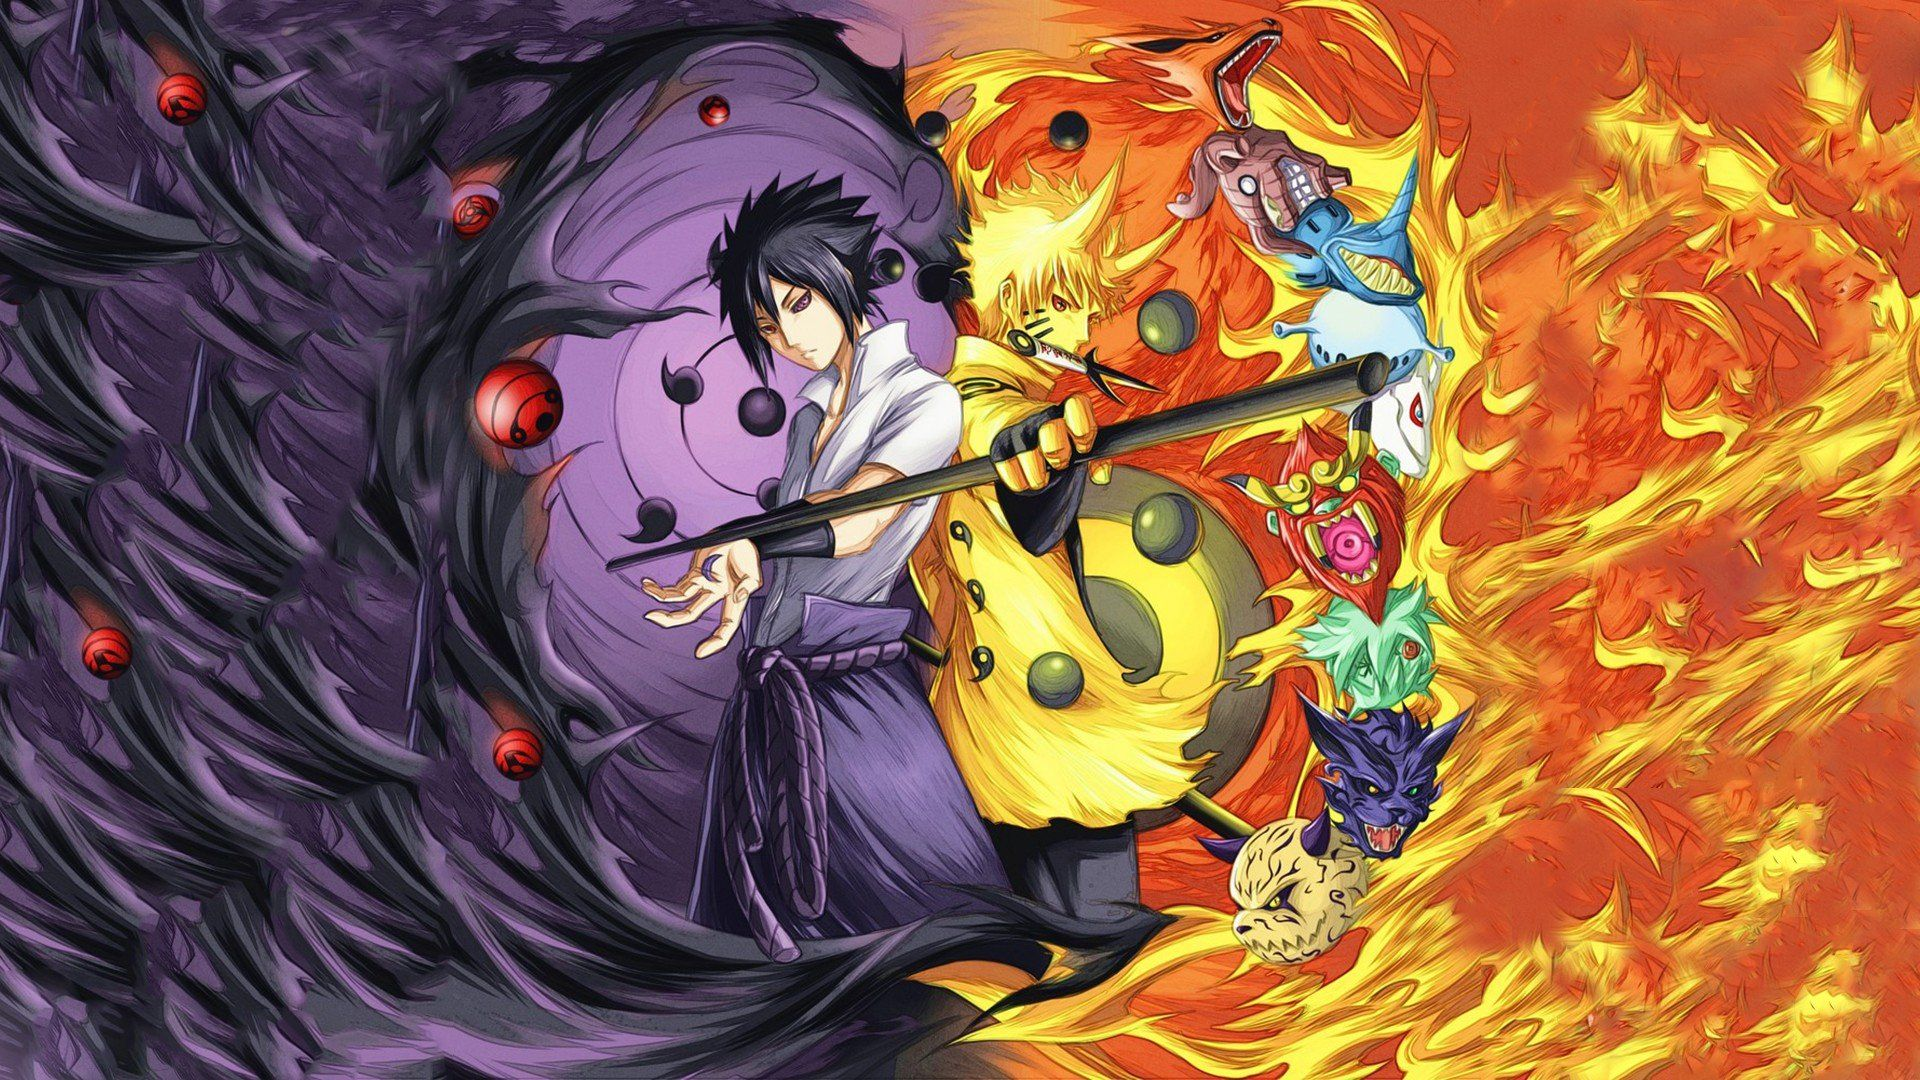 Naruto Vs Sasuke Wallpaper Hd Naruto Vs Sasuke